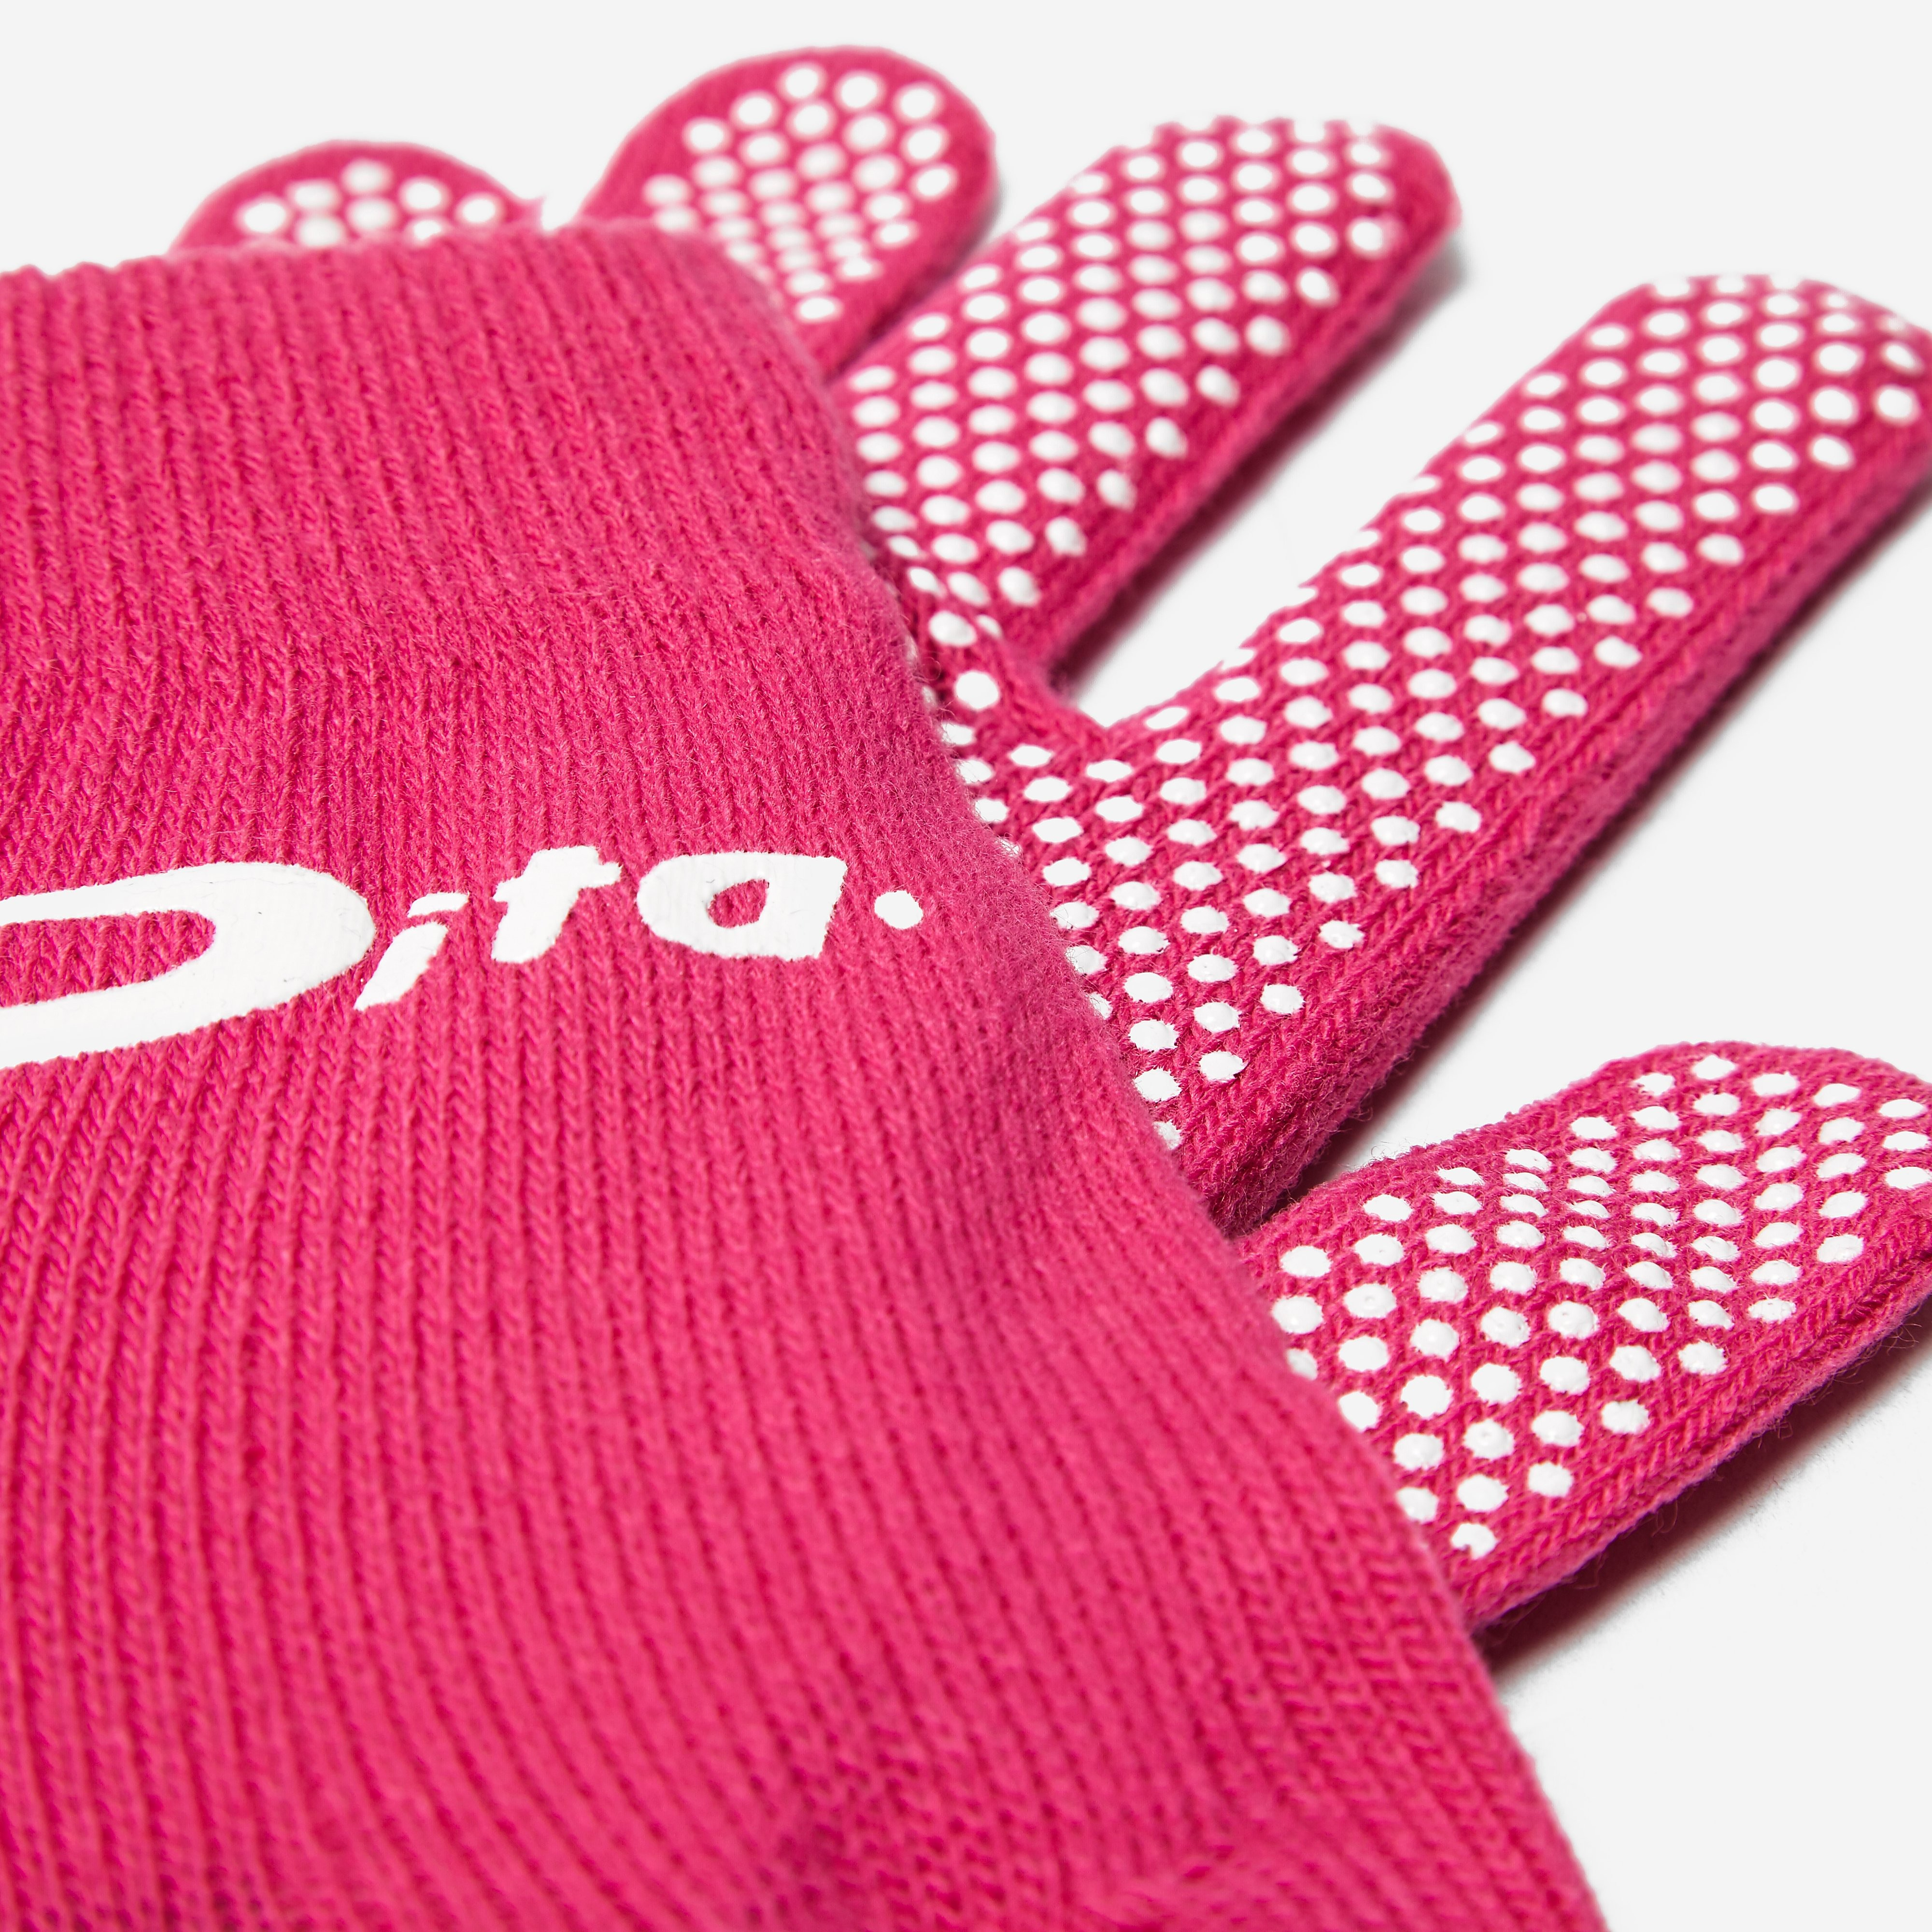 Dita Aspen Hockey Glove